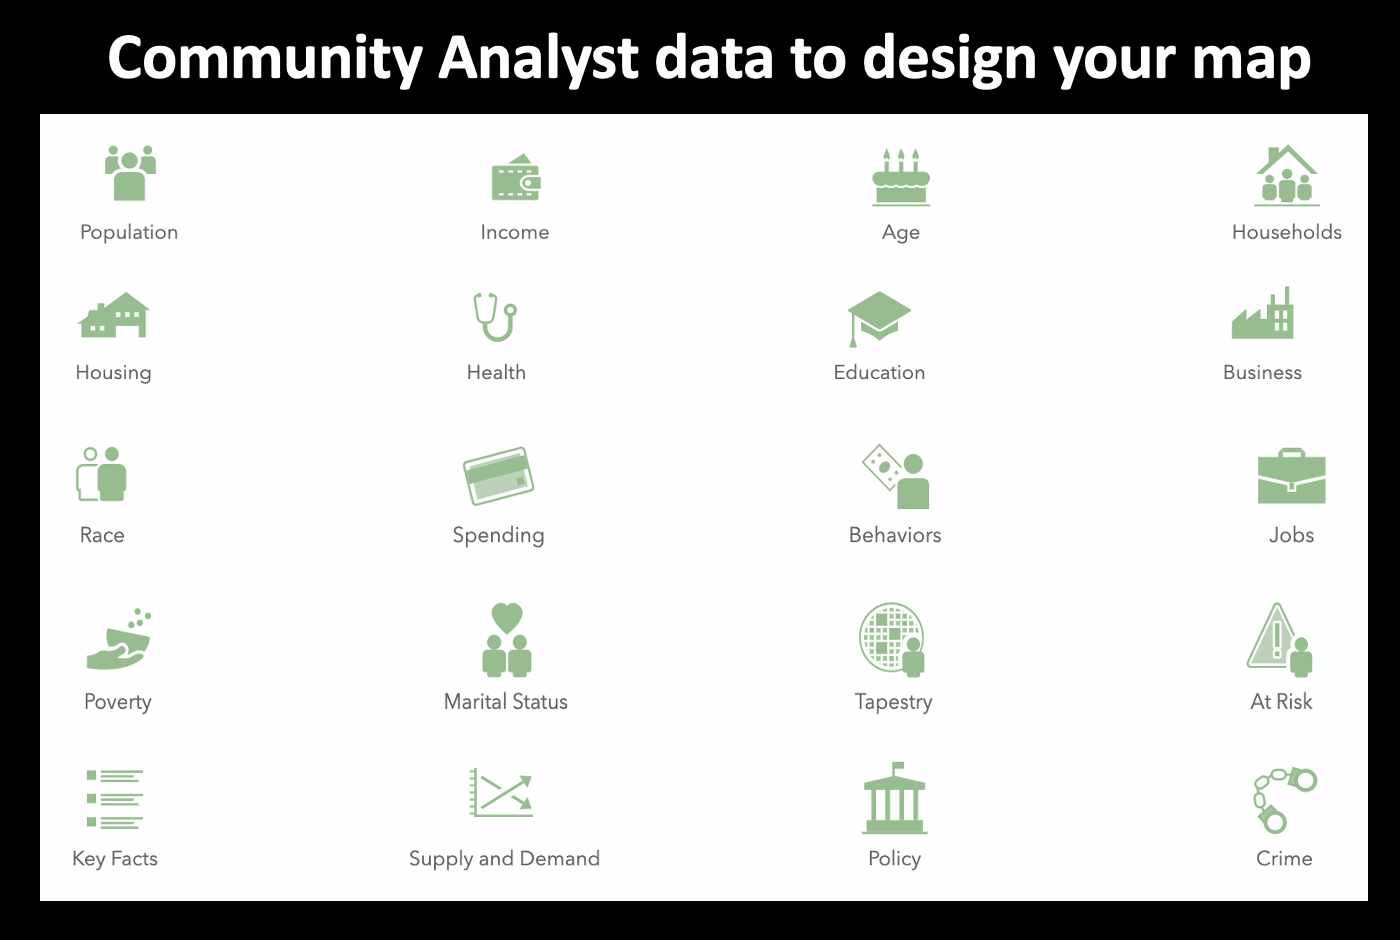 Community Analyst data available to design your Community of interest map